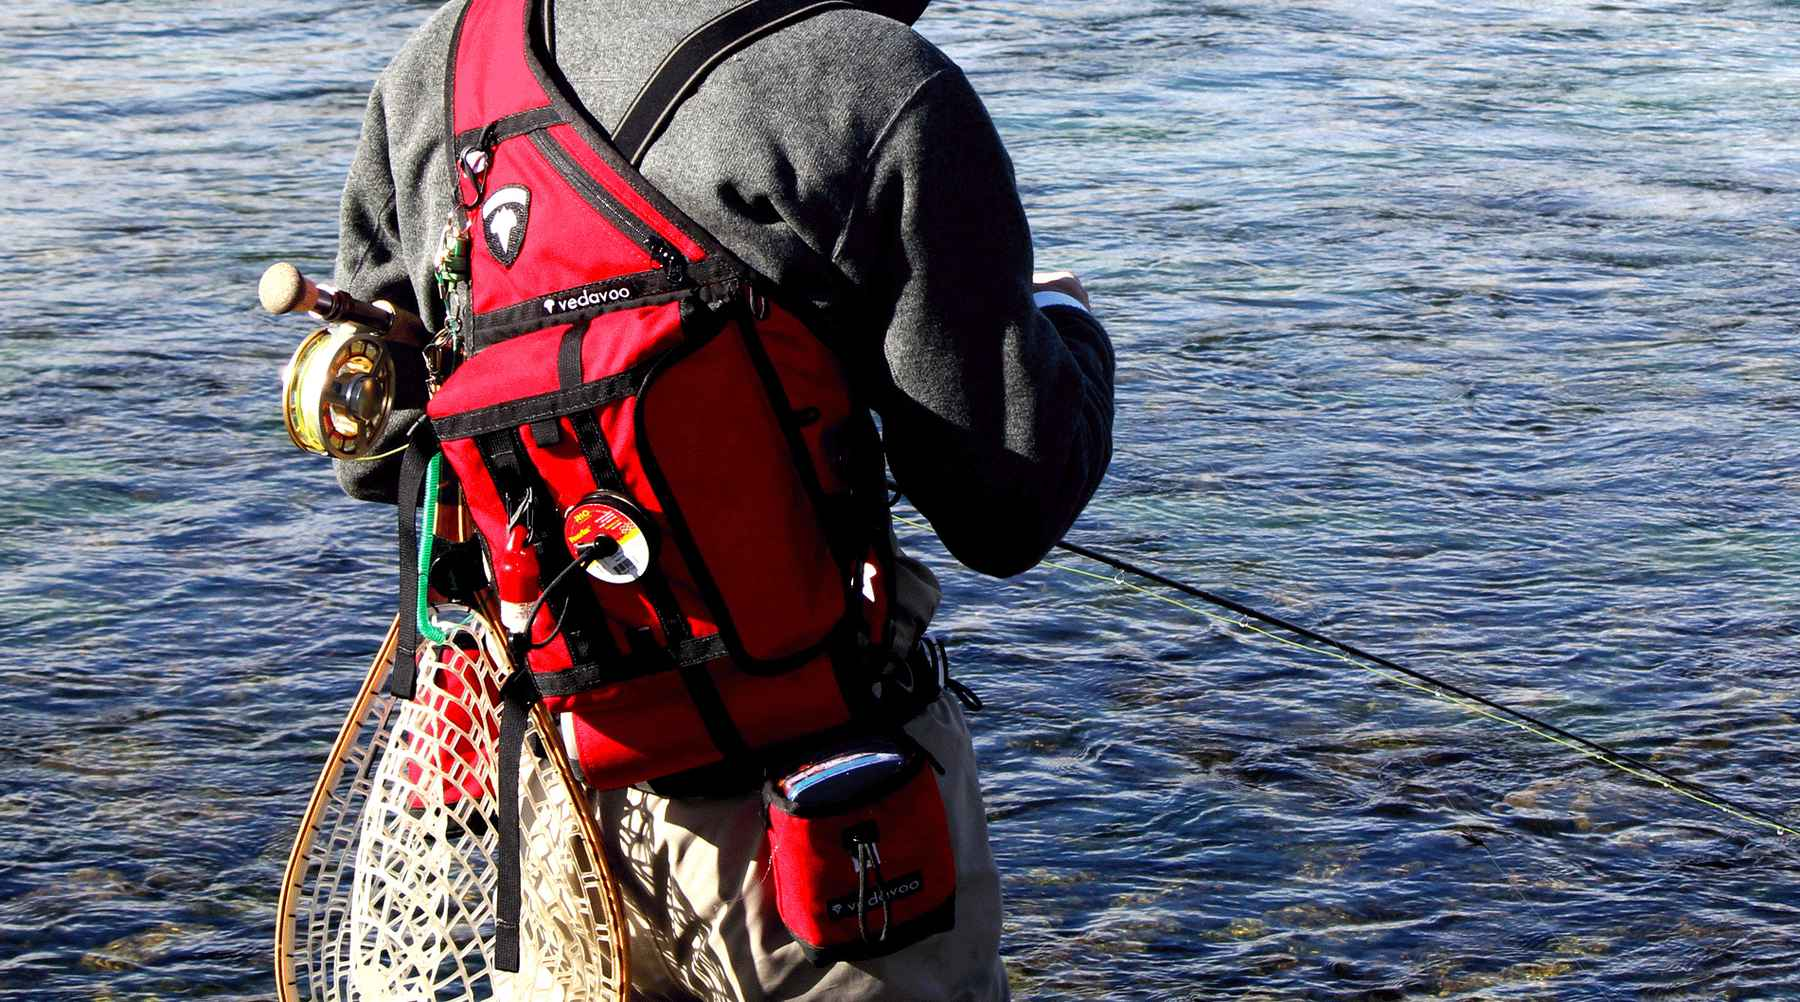 With vedavoo it 39 s the little things hatch magazine for Blackhawk fly fishing